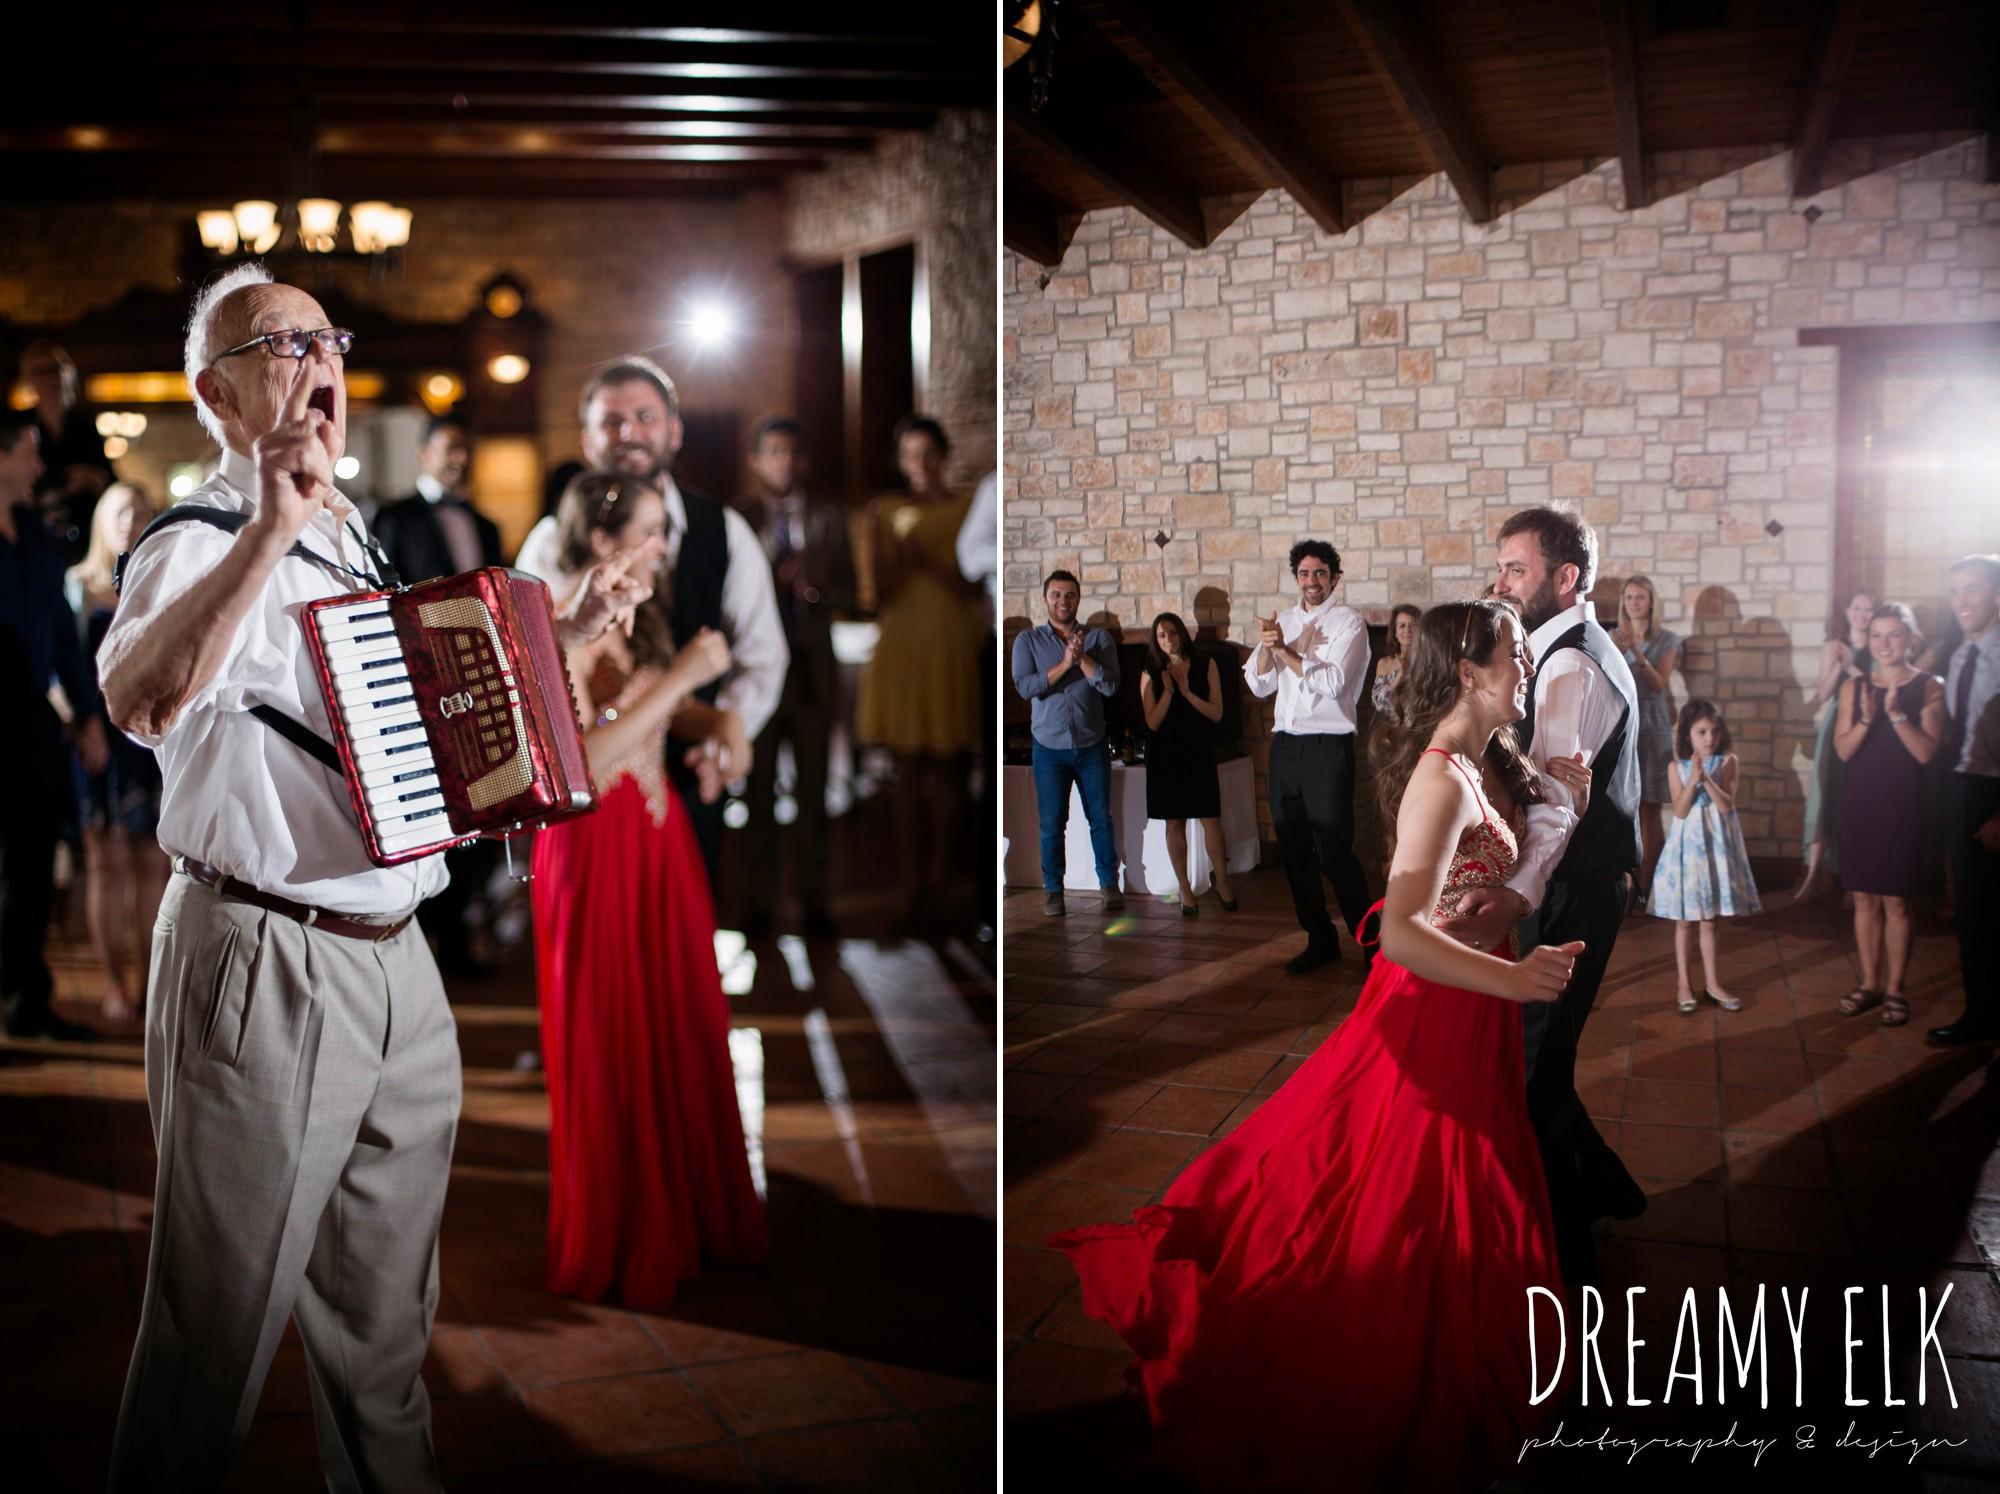 traditional hungarian dancing, outdoor spring april wedding photo, thurman's mansion, dripping springs, texas {dreamy elk photography and design}